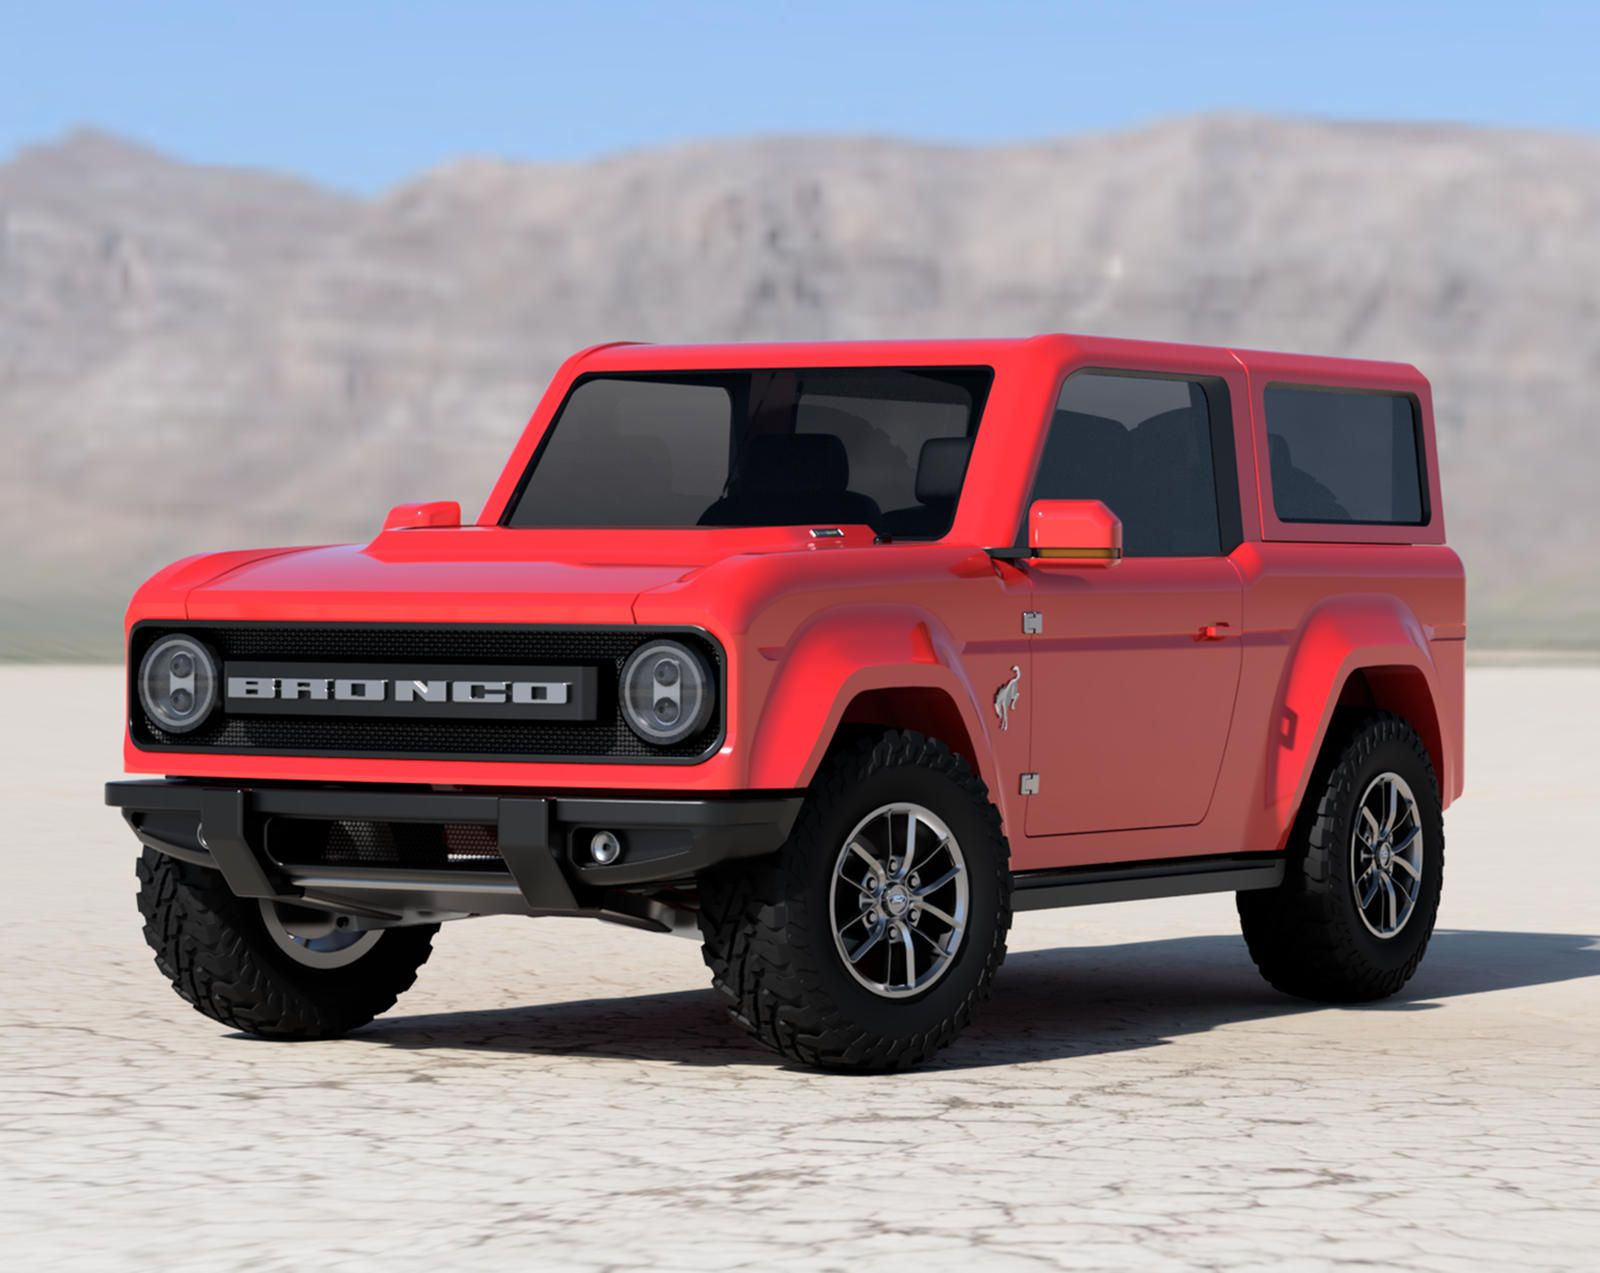 Best Look Yet At 2021 Ford Bronco In 2020 Ford Bronco New